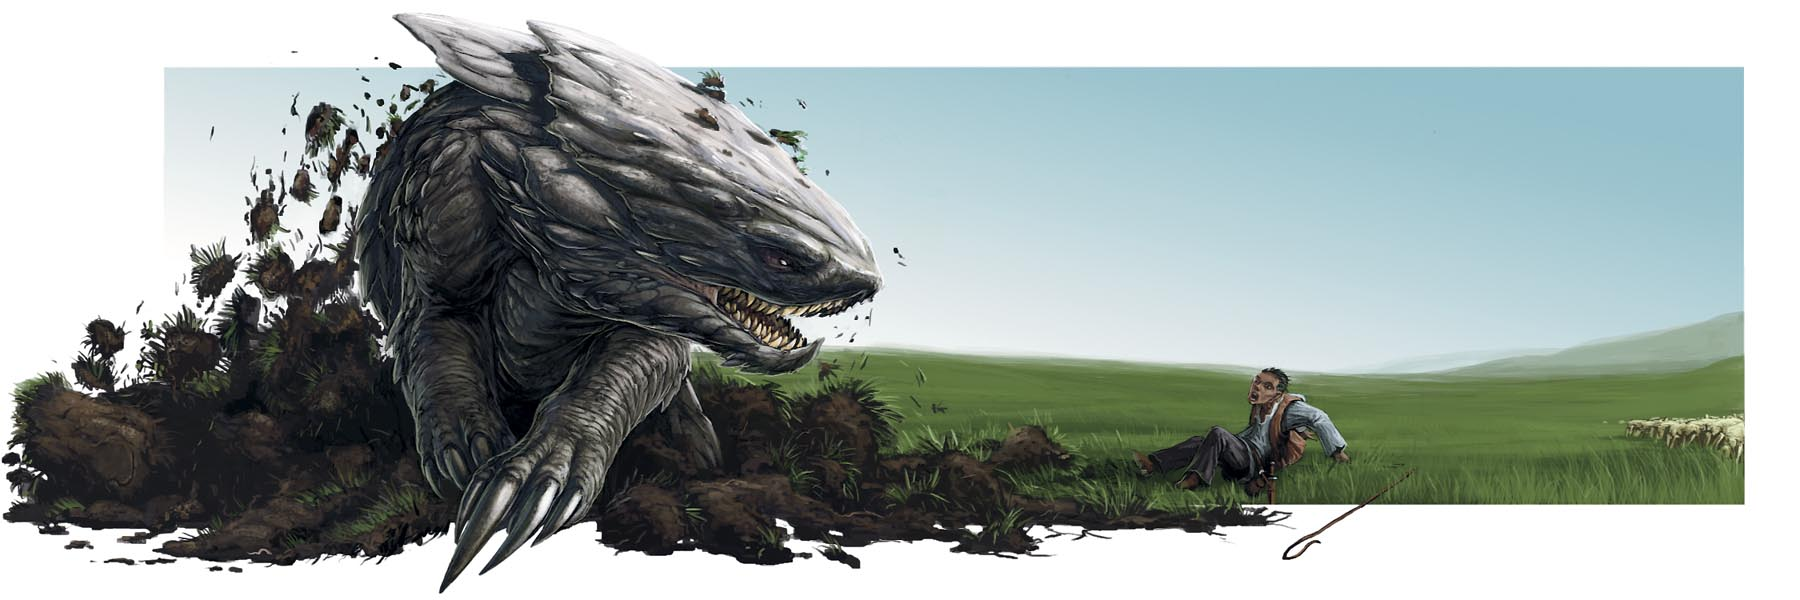 Monster_Manual_4e_-_Bulette_-_p38.jpg